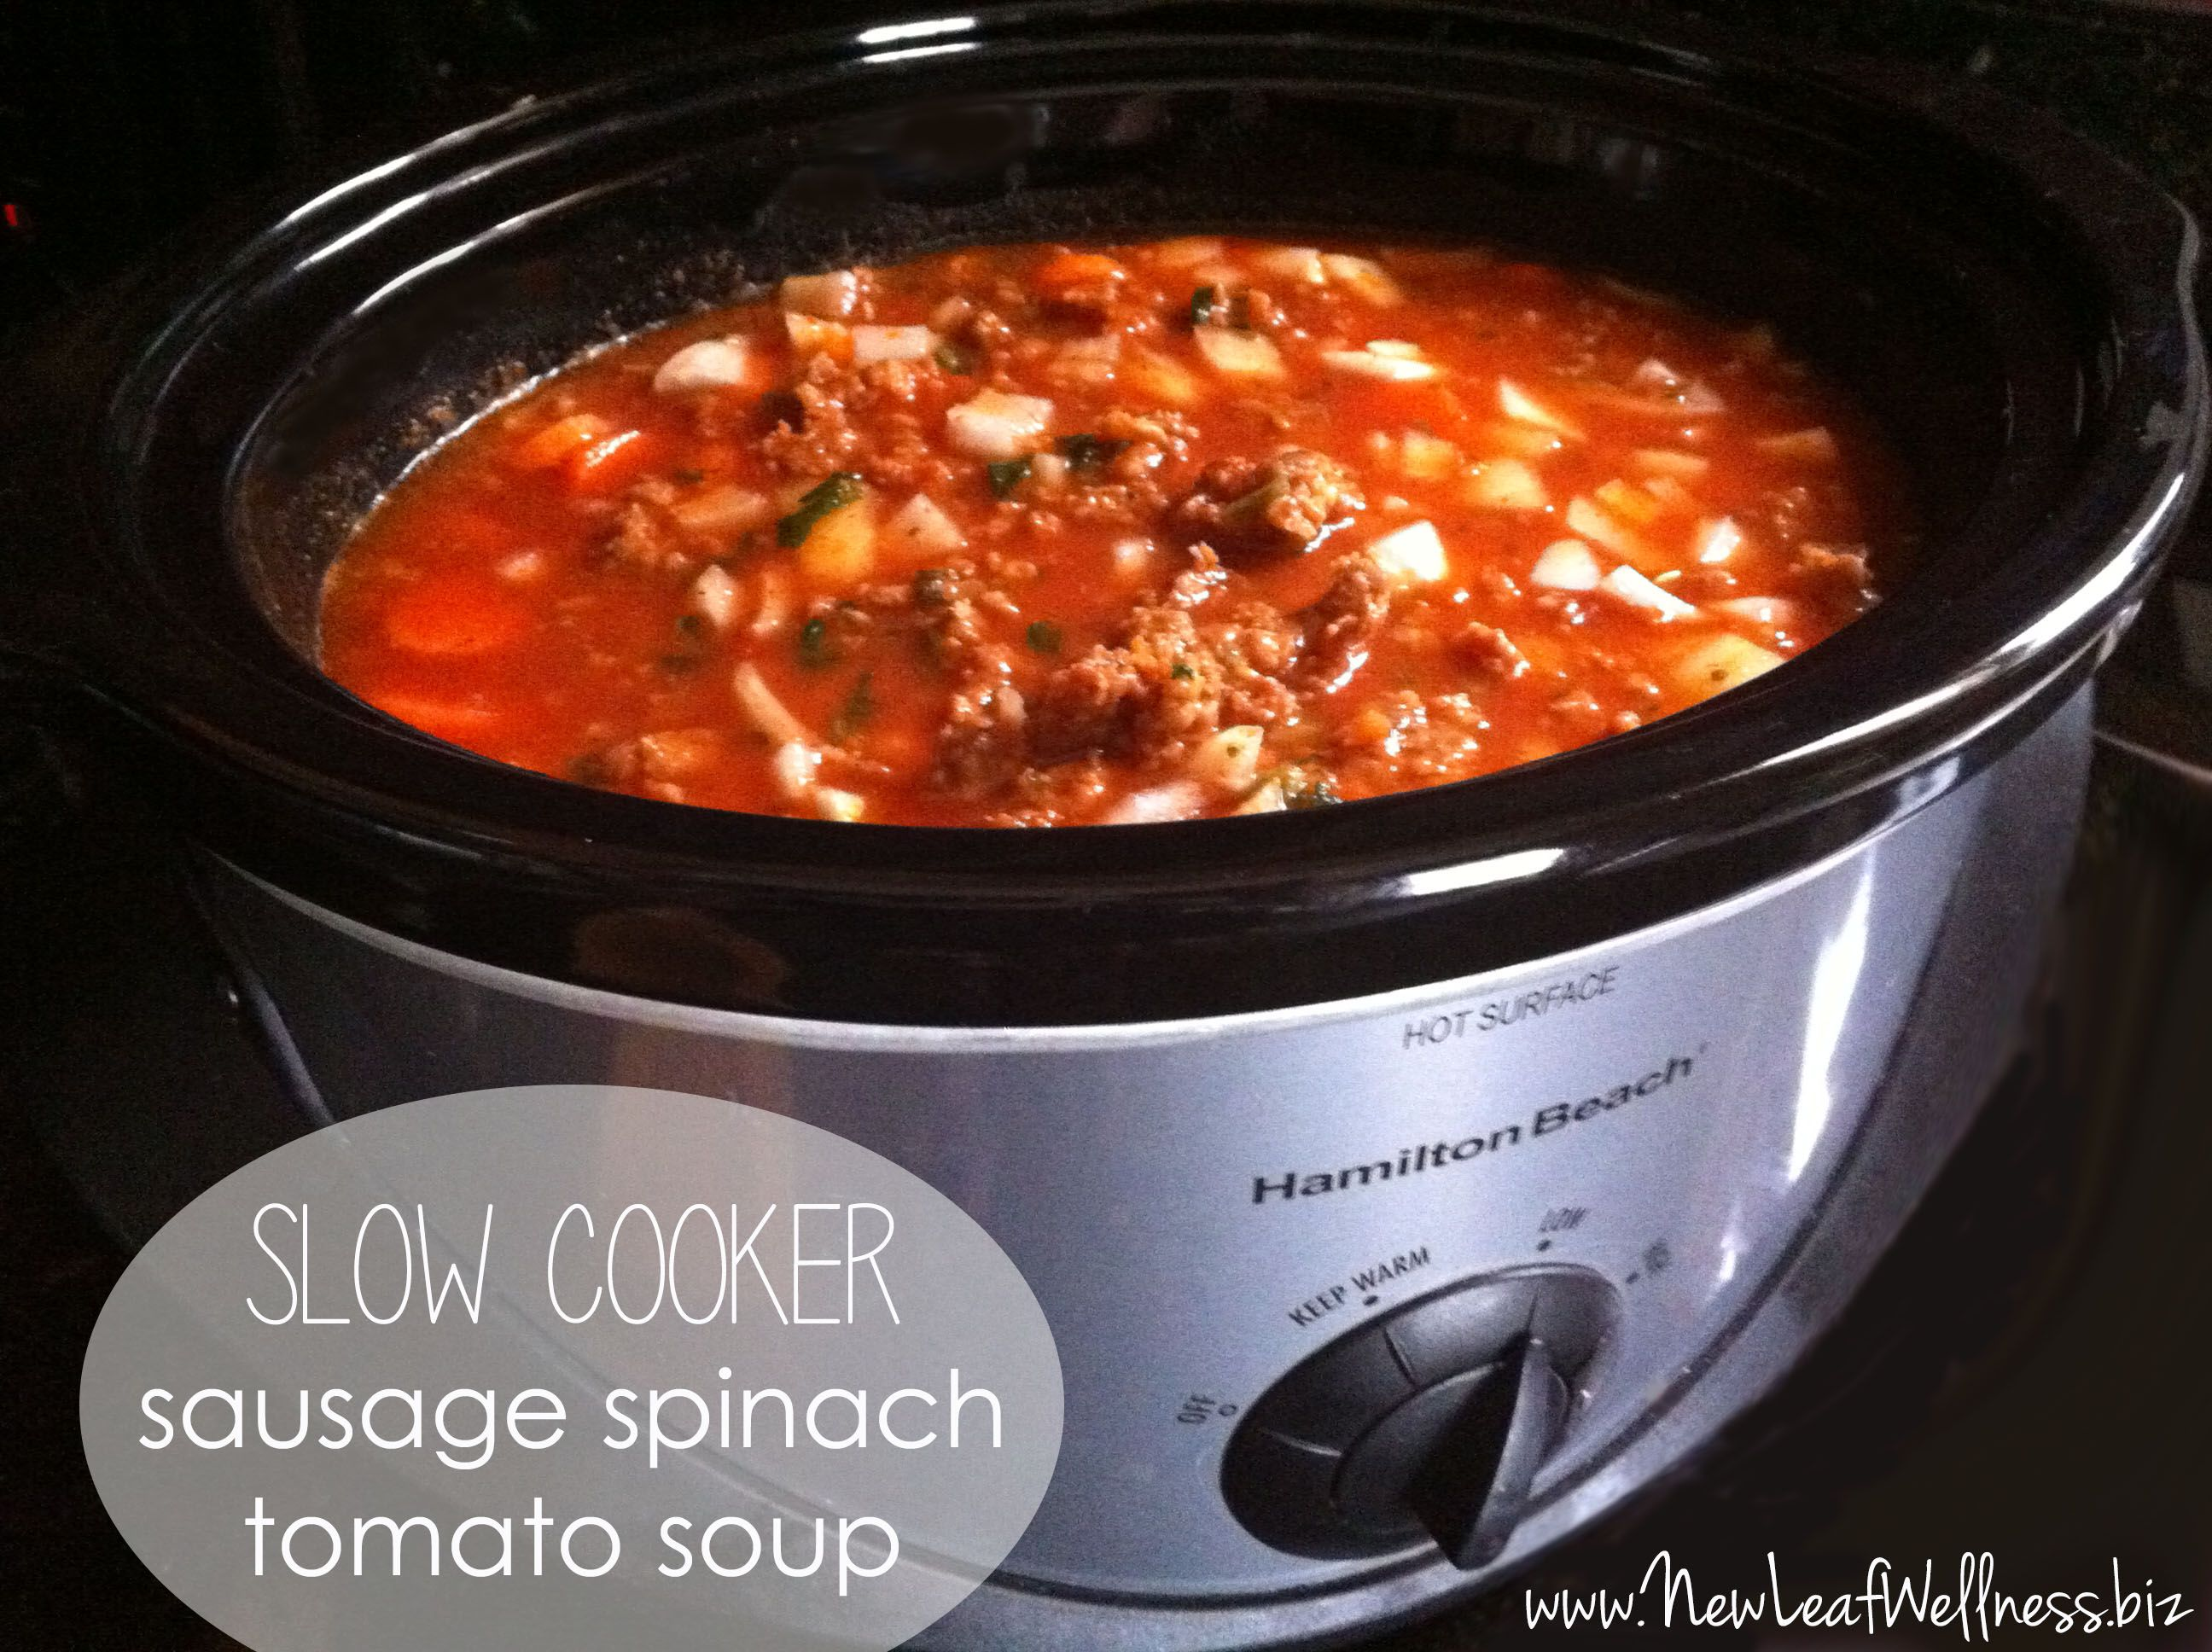 Slow cooker sausage spinach tomato soup recipe super easy for Delicious slow cooker soup recipes